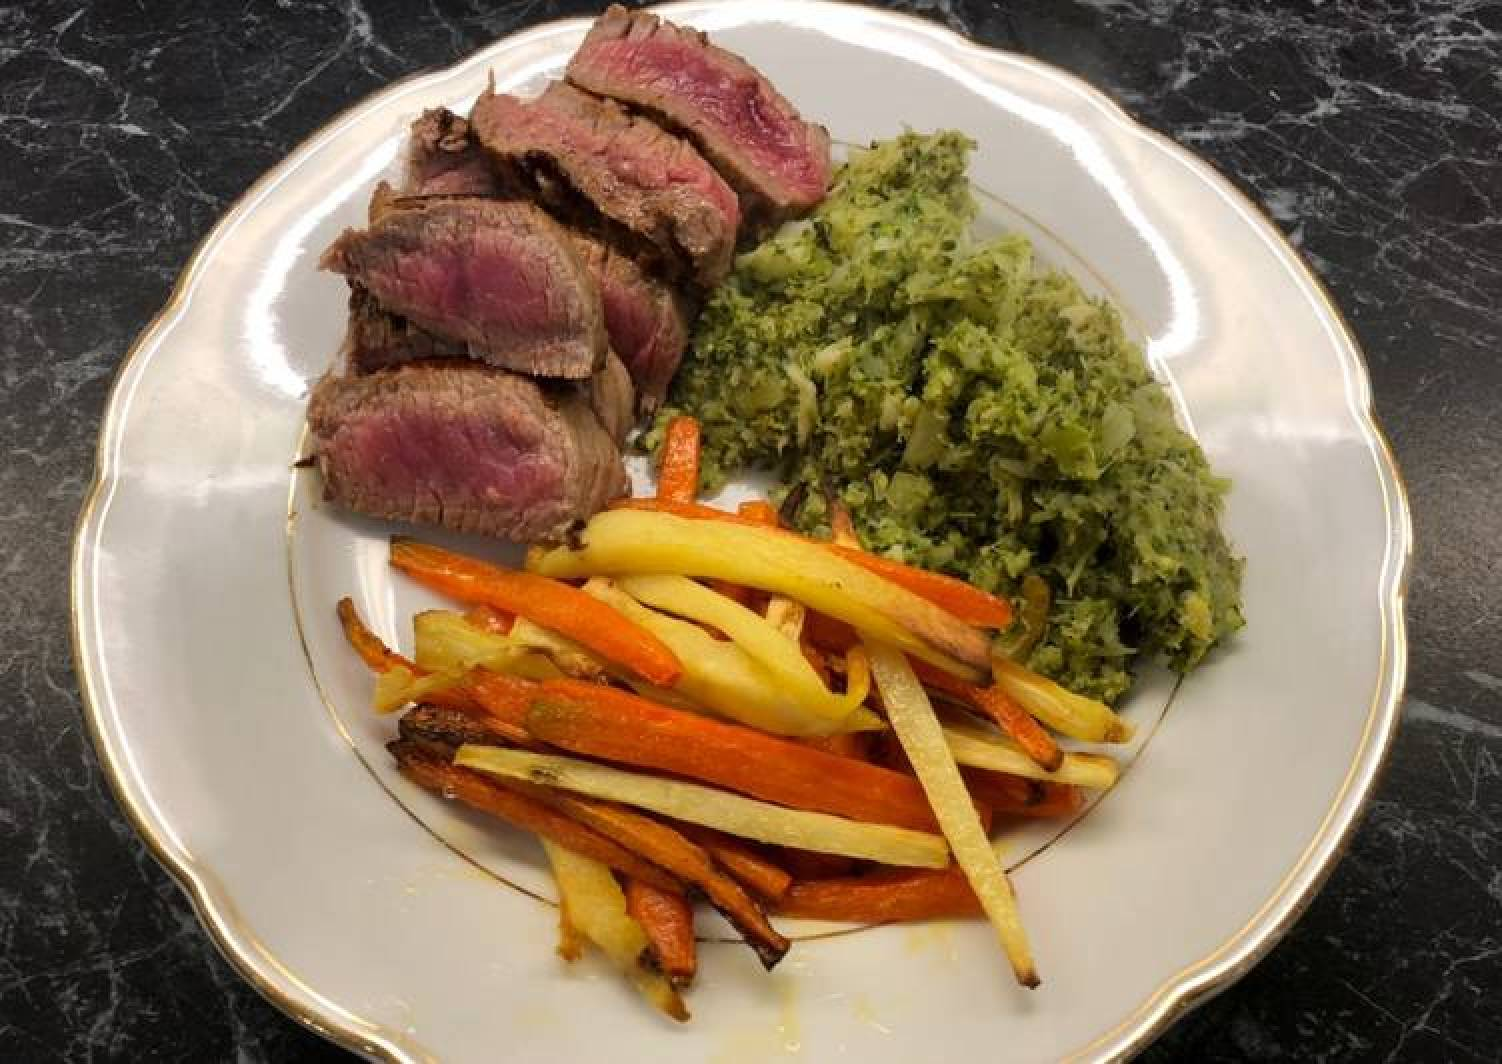 Steak with brocolli mash and parsnip/carrot fries